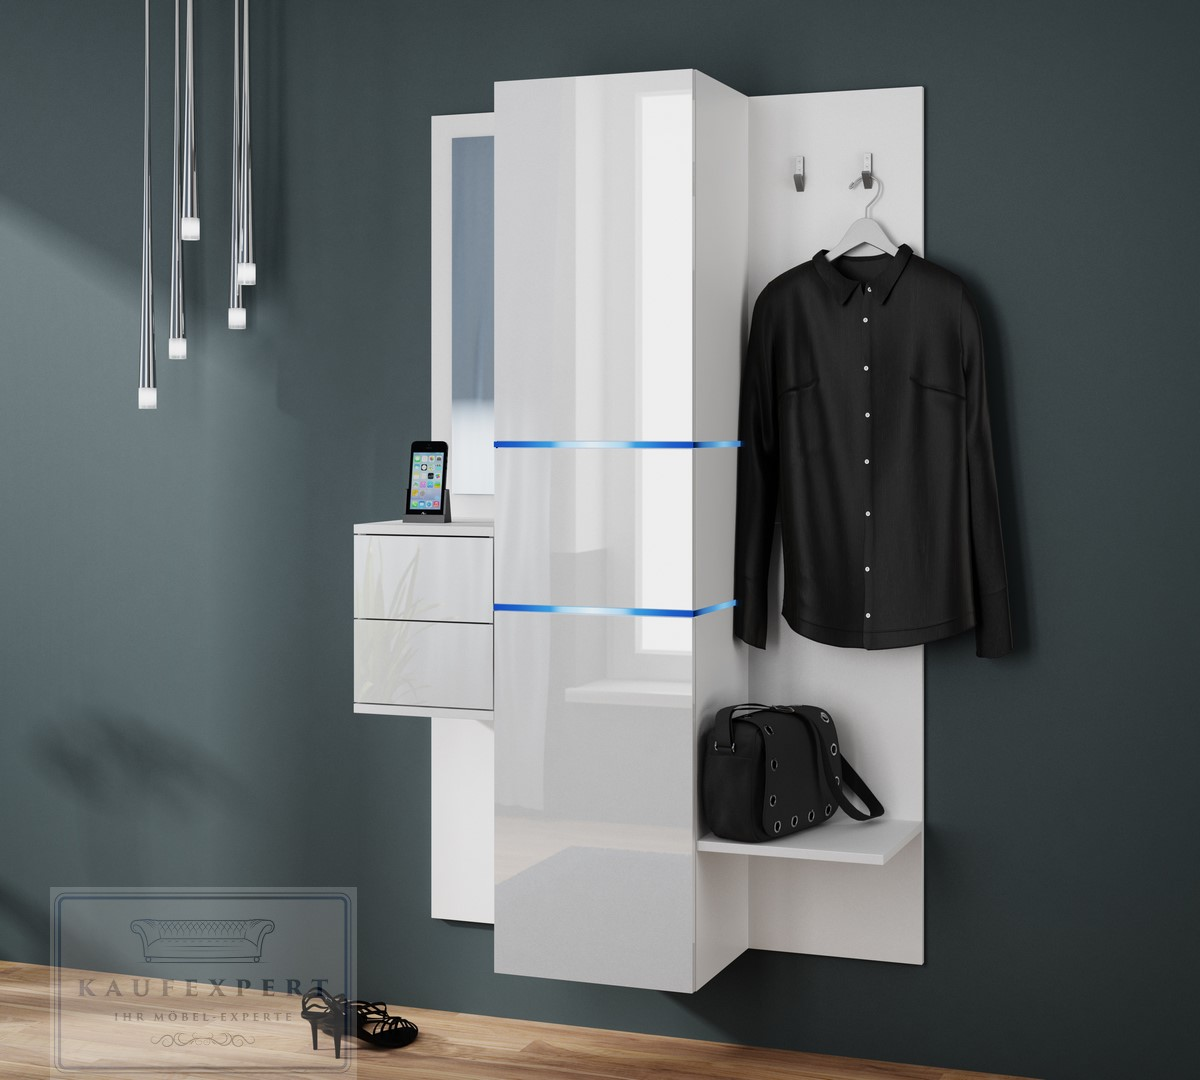 garderobe camino neue bessere version hochglanz wei led wandgarderobe ebay. Black Bedroom Furniture Sets. Home Design Ideas